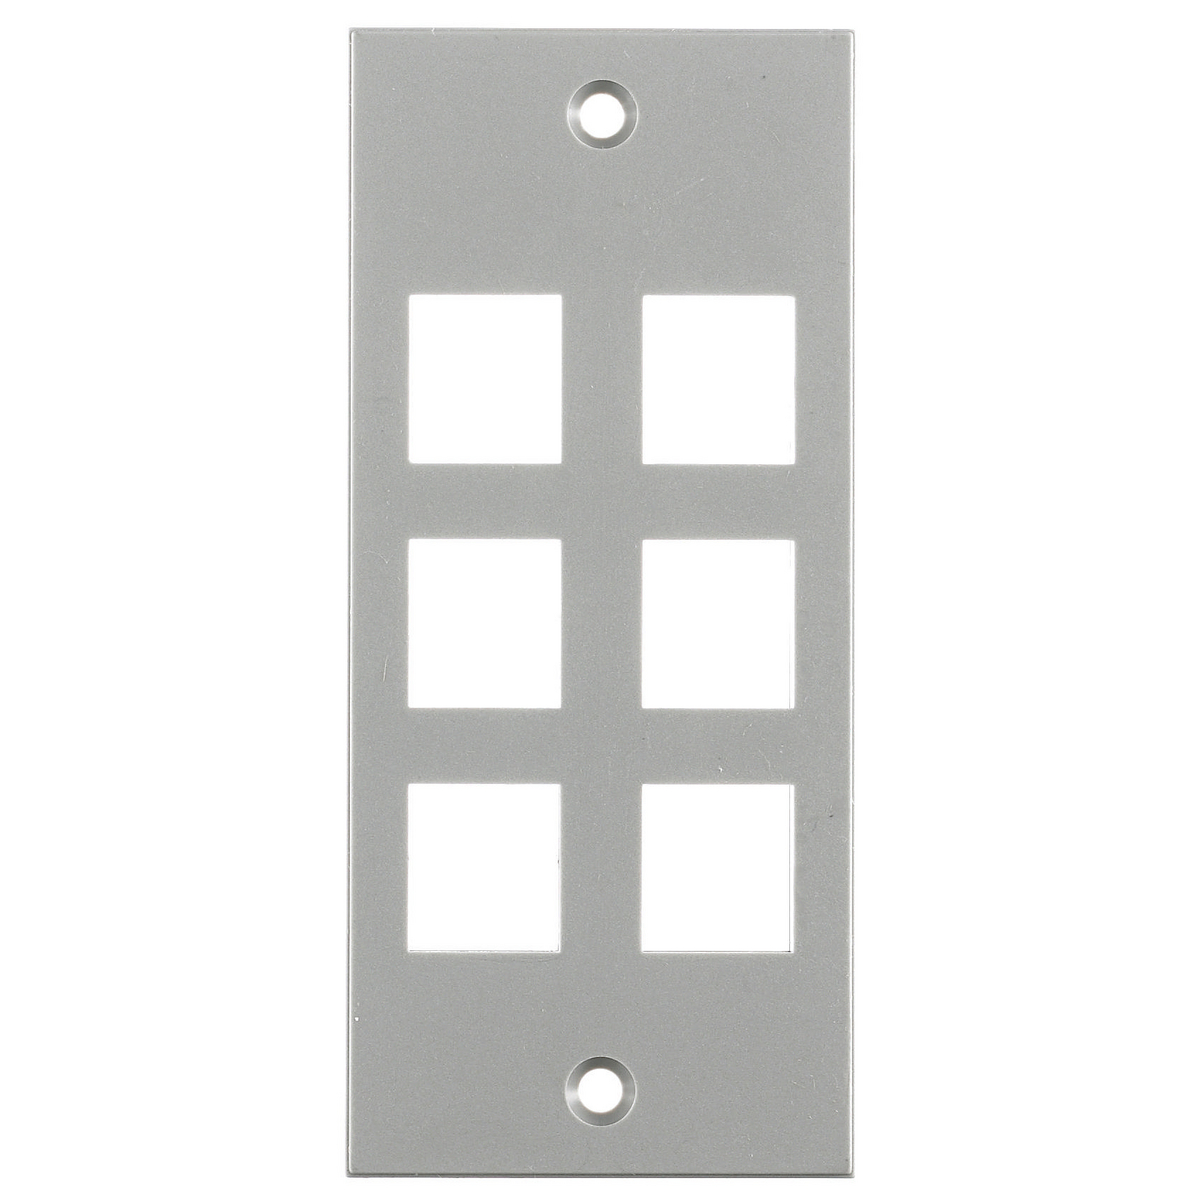 Hubbell HBL317SGY 6-Port 2 x 4.5 Inch Gray Screw Type Face Plate